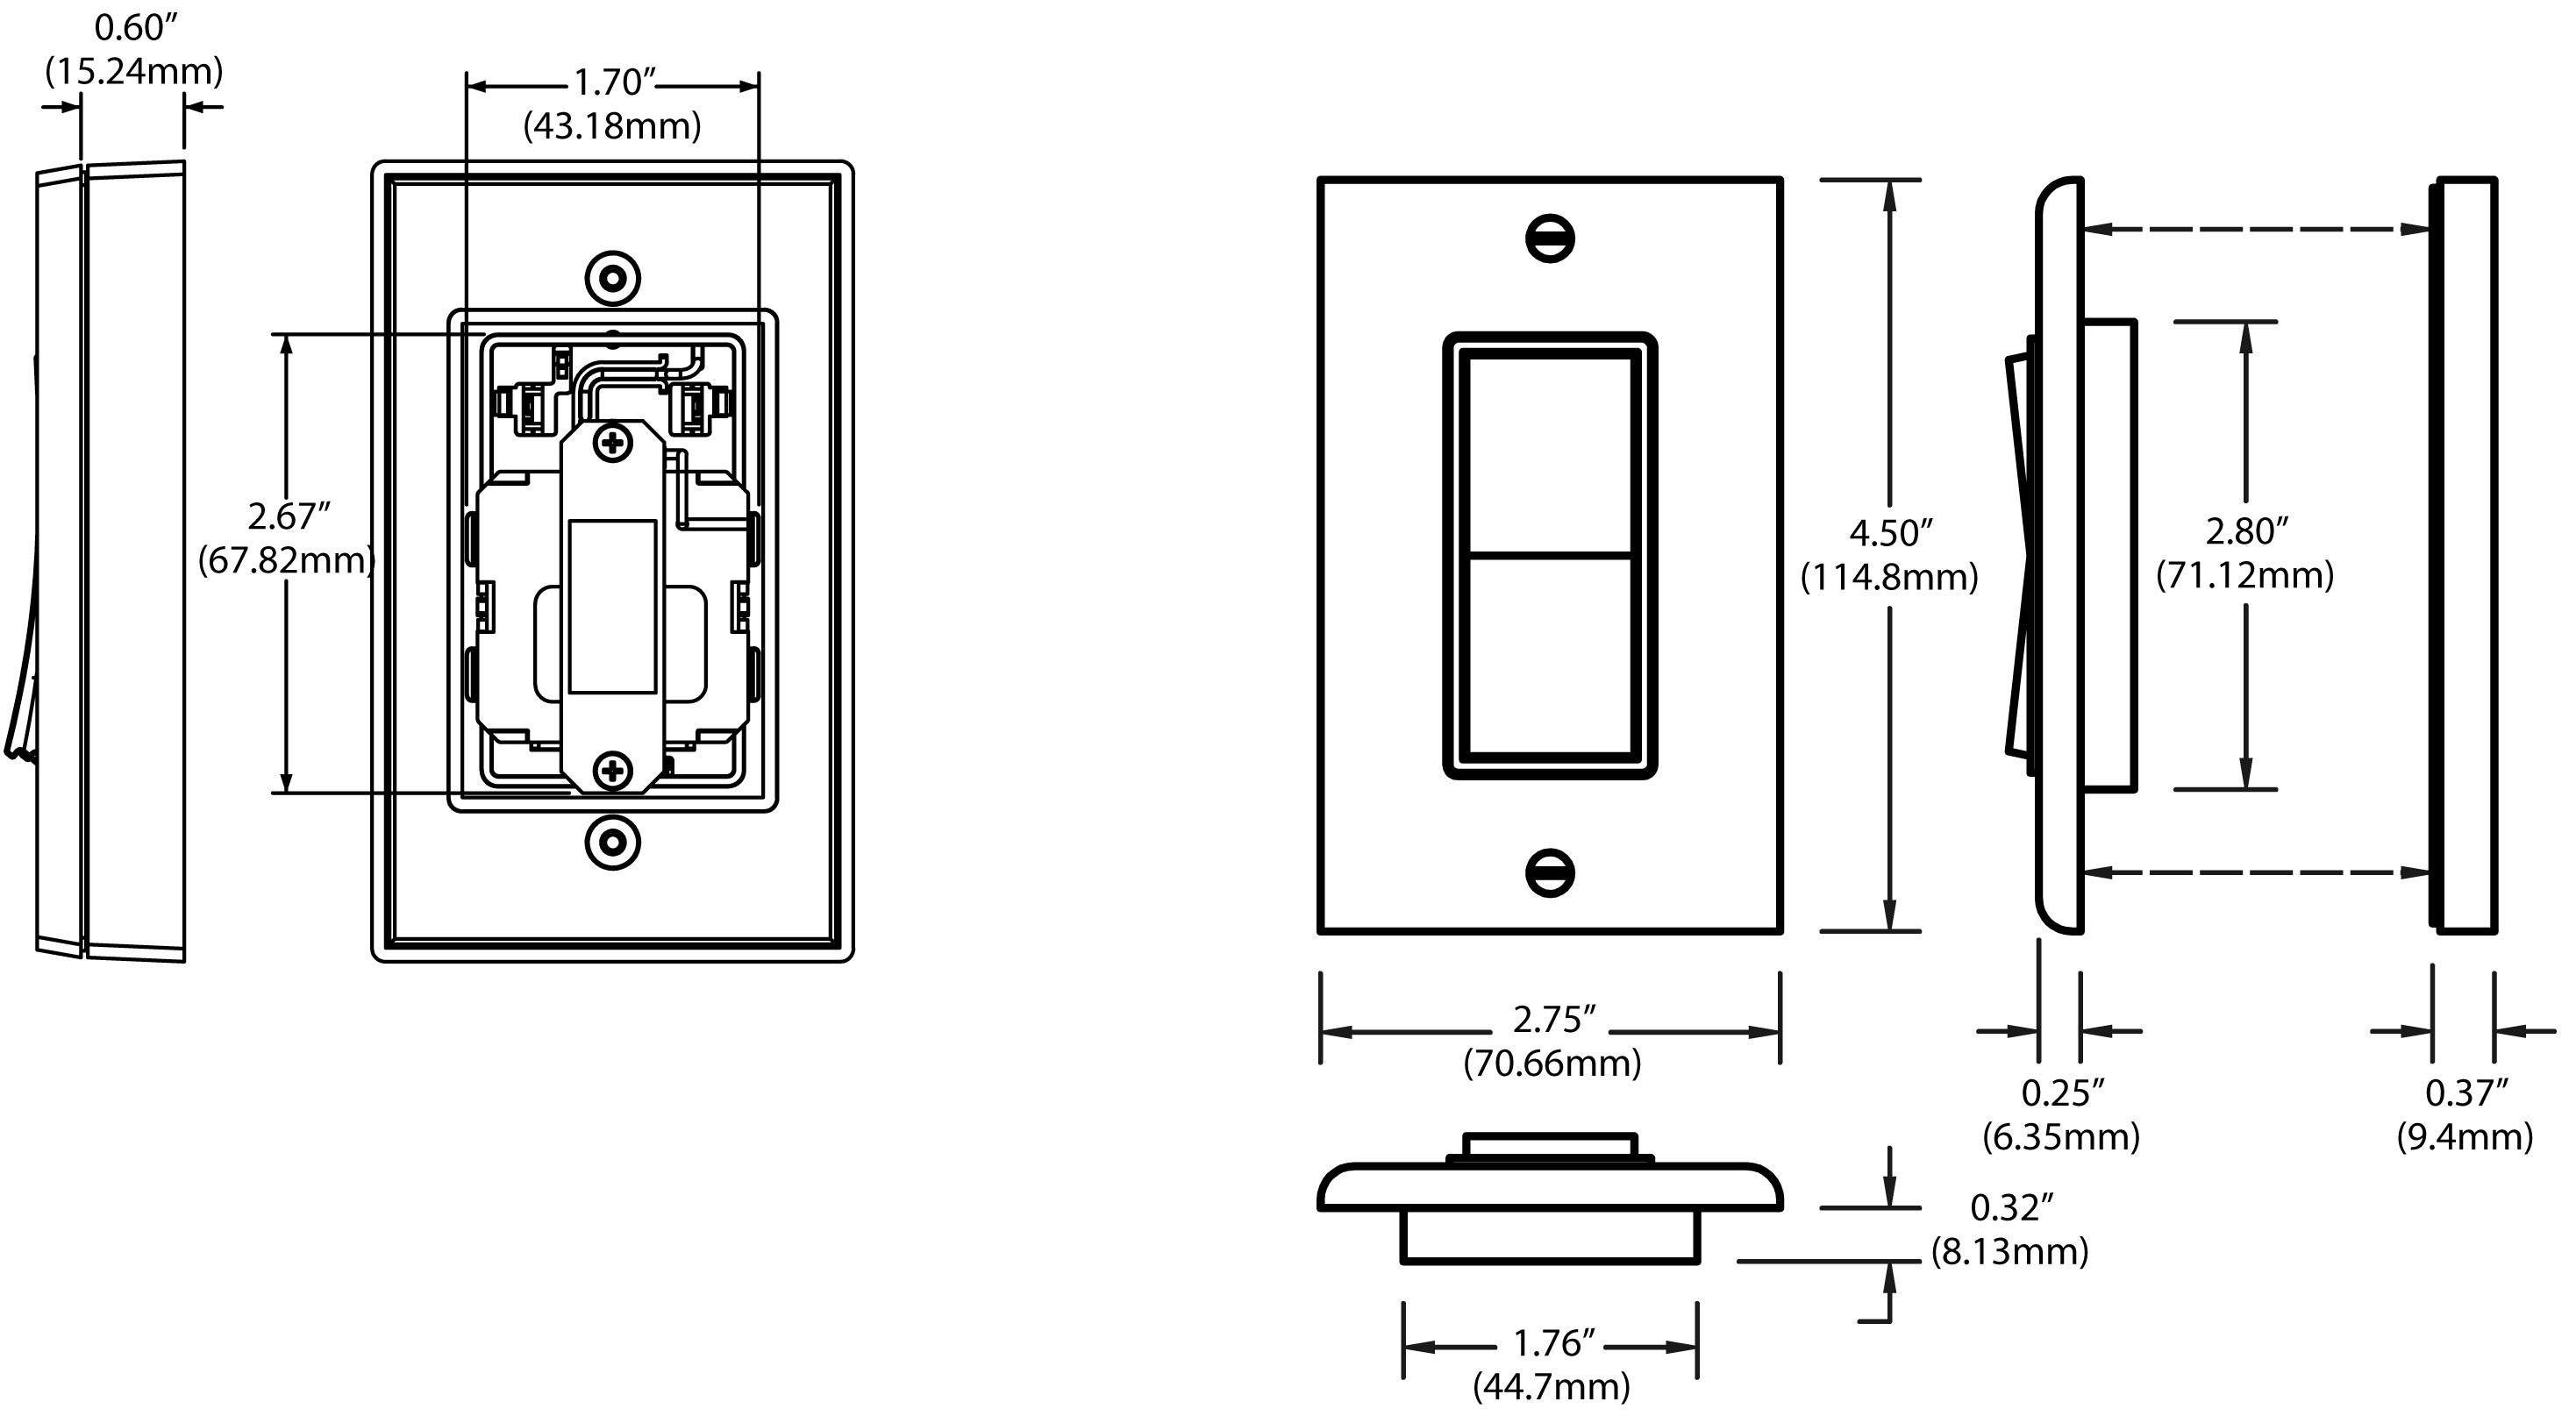 BottomILarge._V390024919_ leviton wss0s p0w wireless self powered remote switch, white standard light switch wiring diagram at gsmx.co